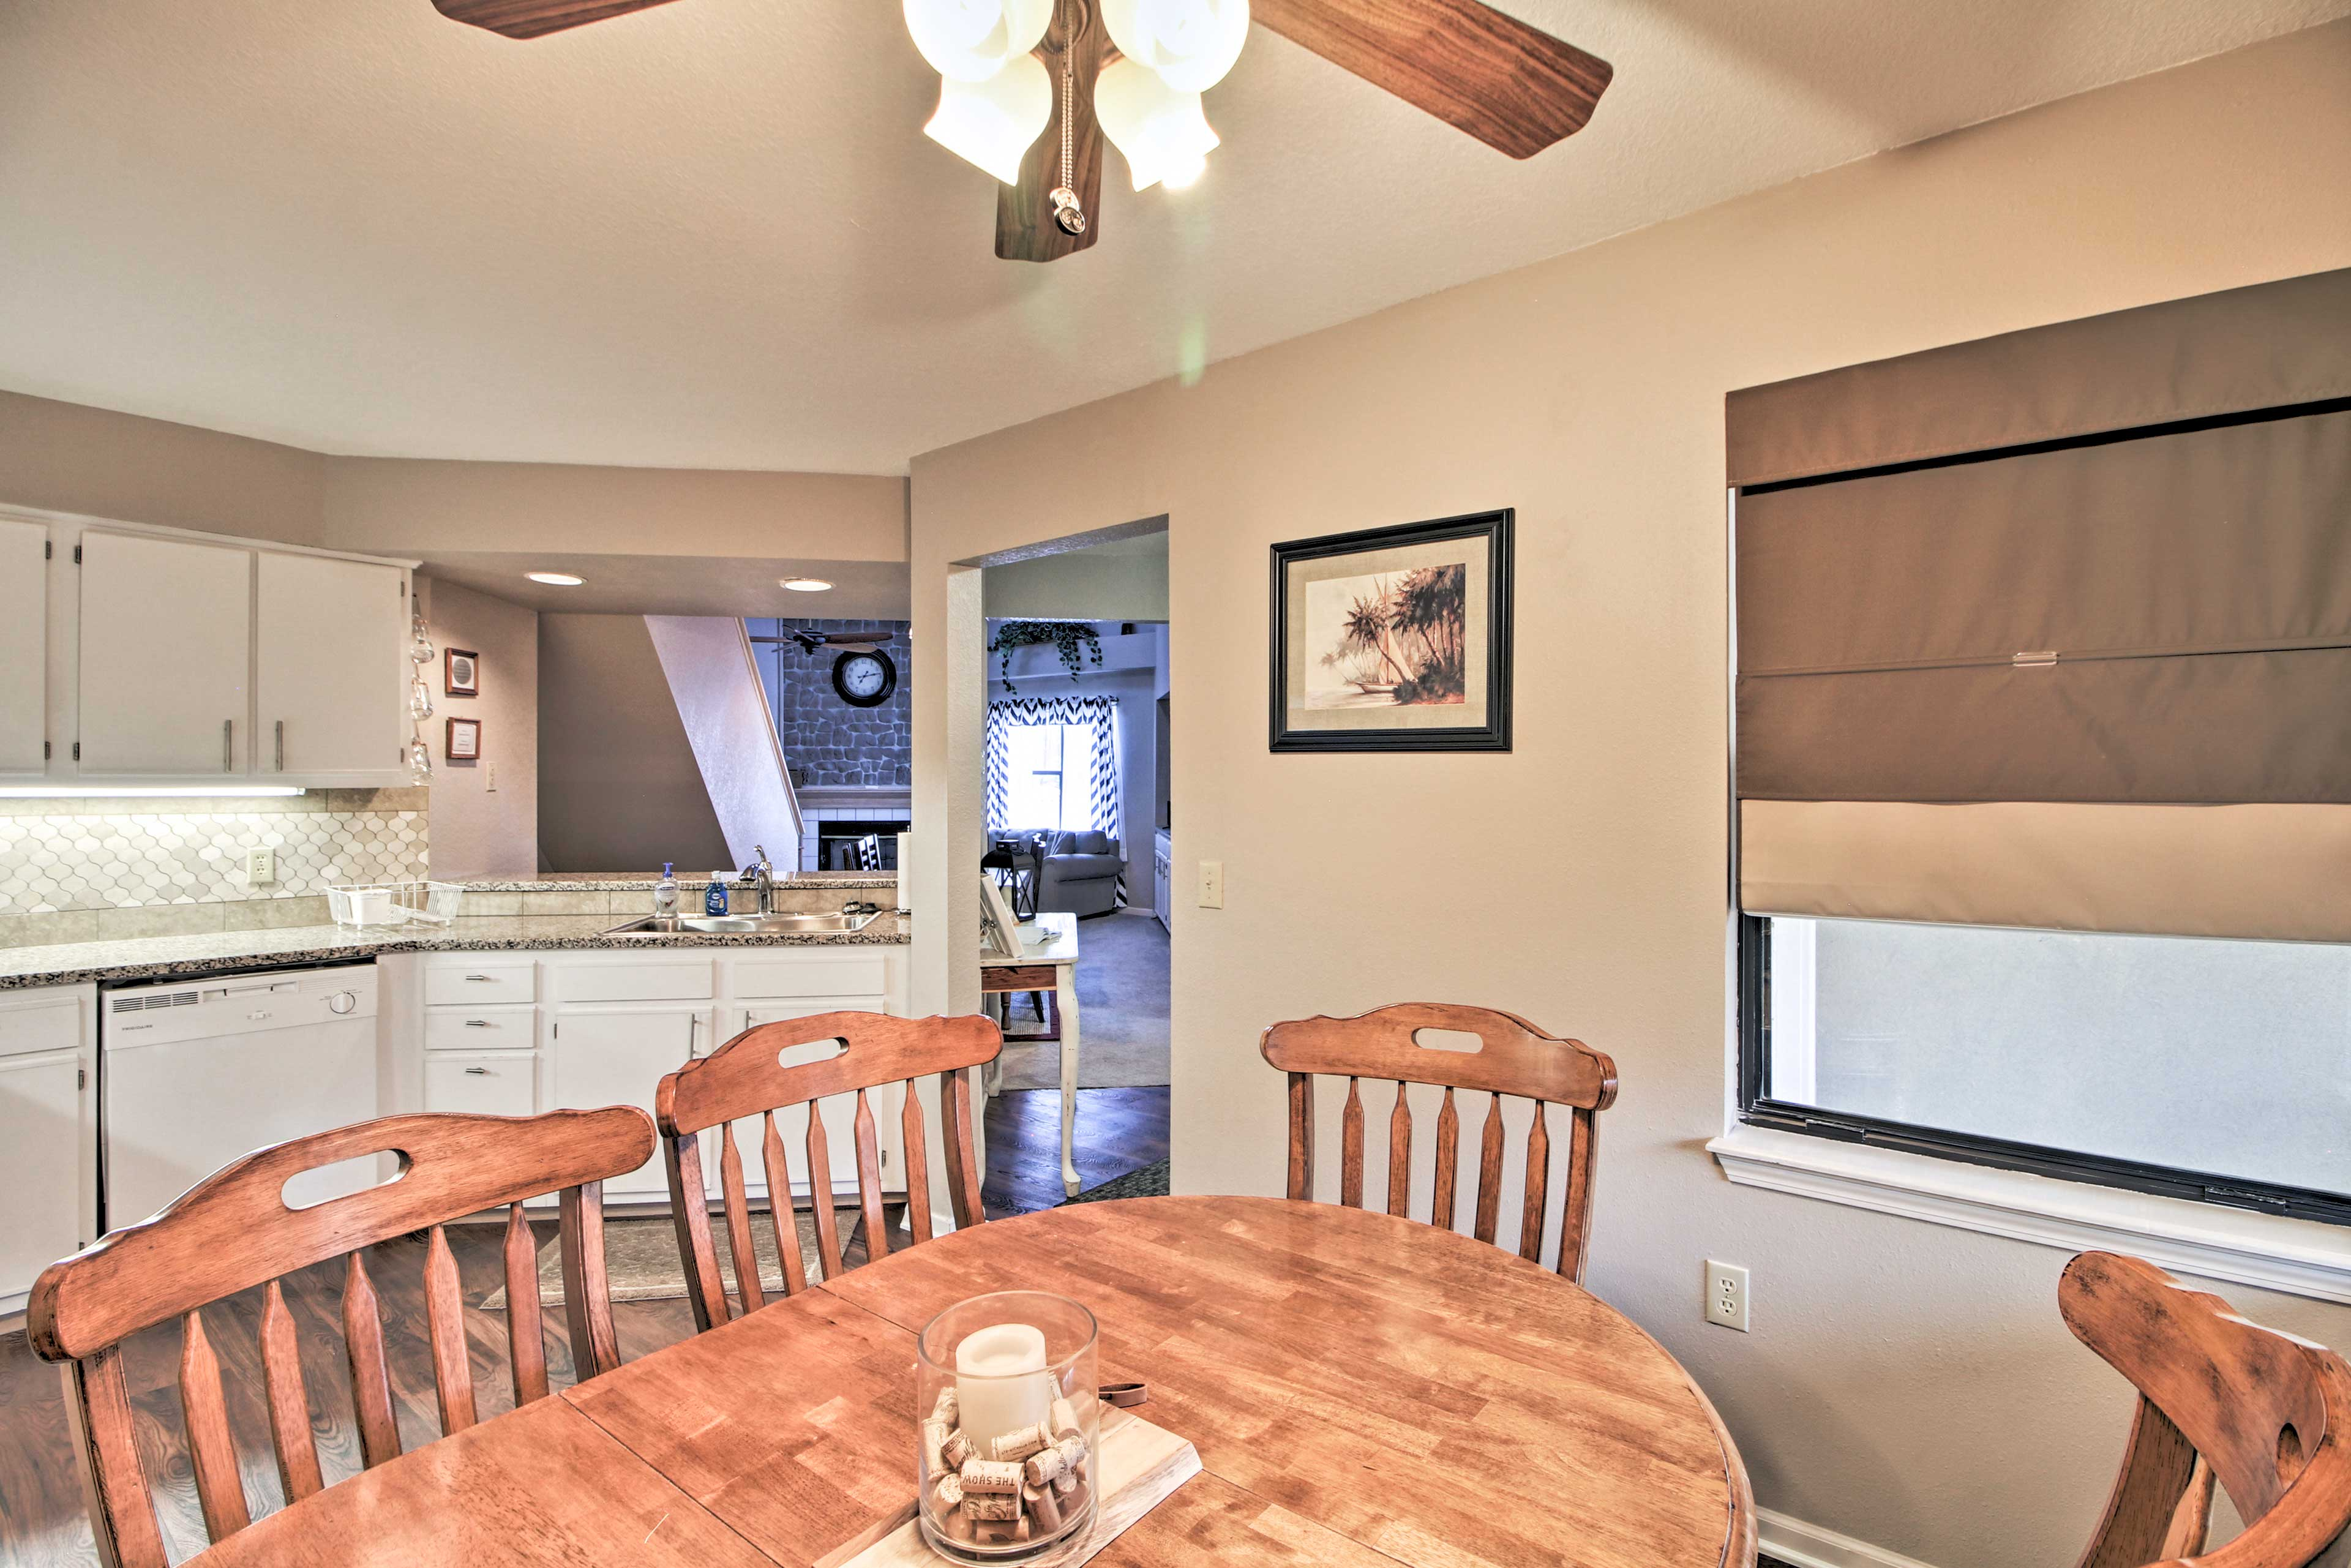 Fully Equipped Kitchen | Dining Table